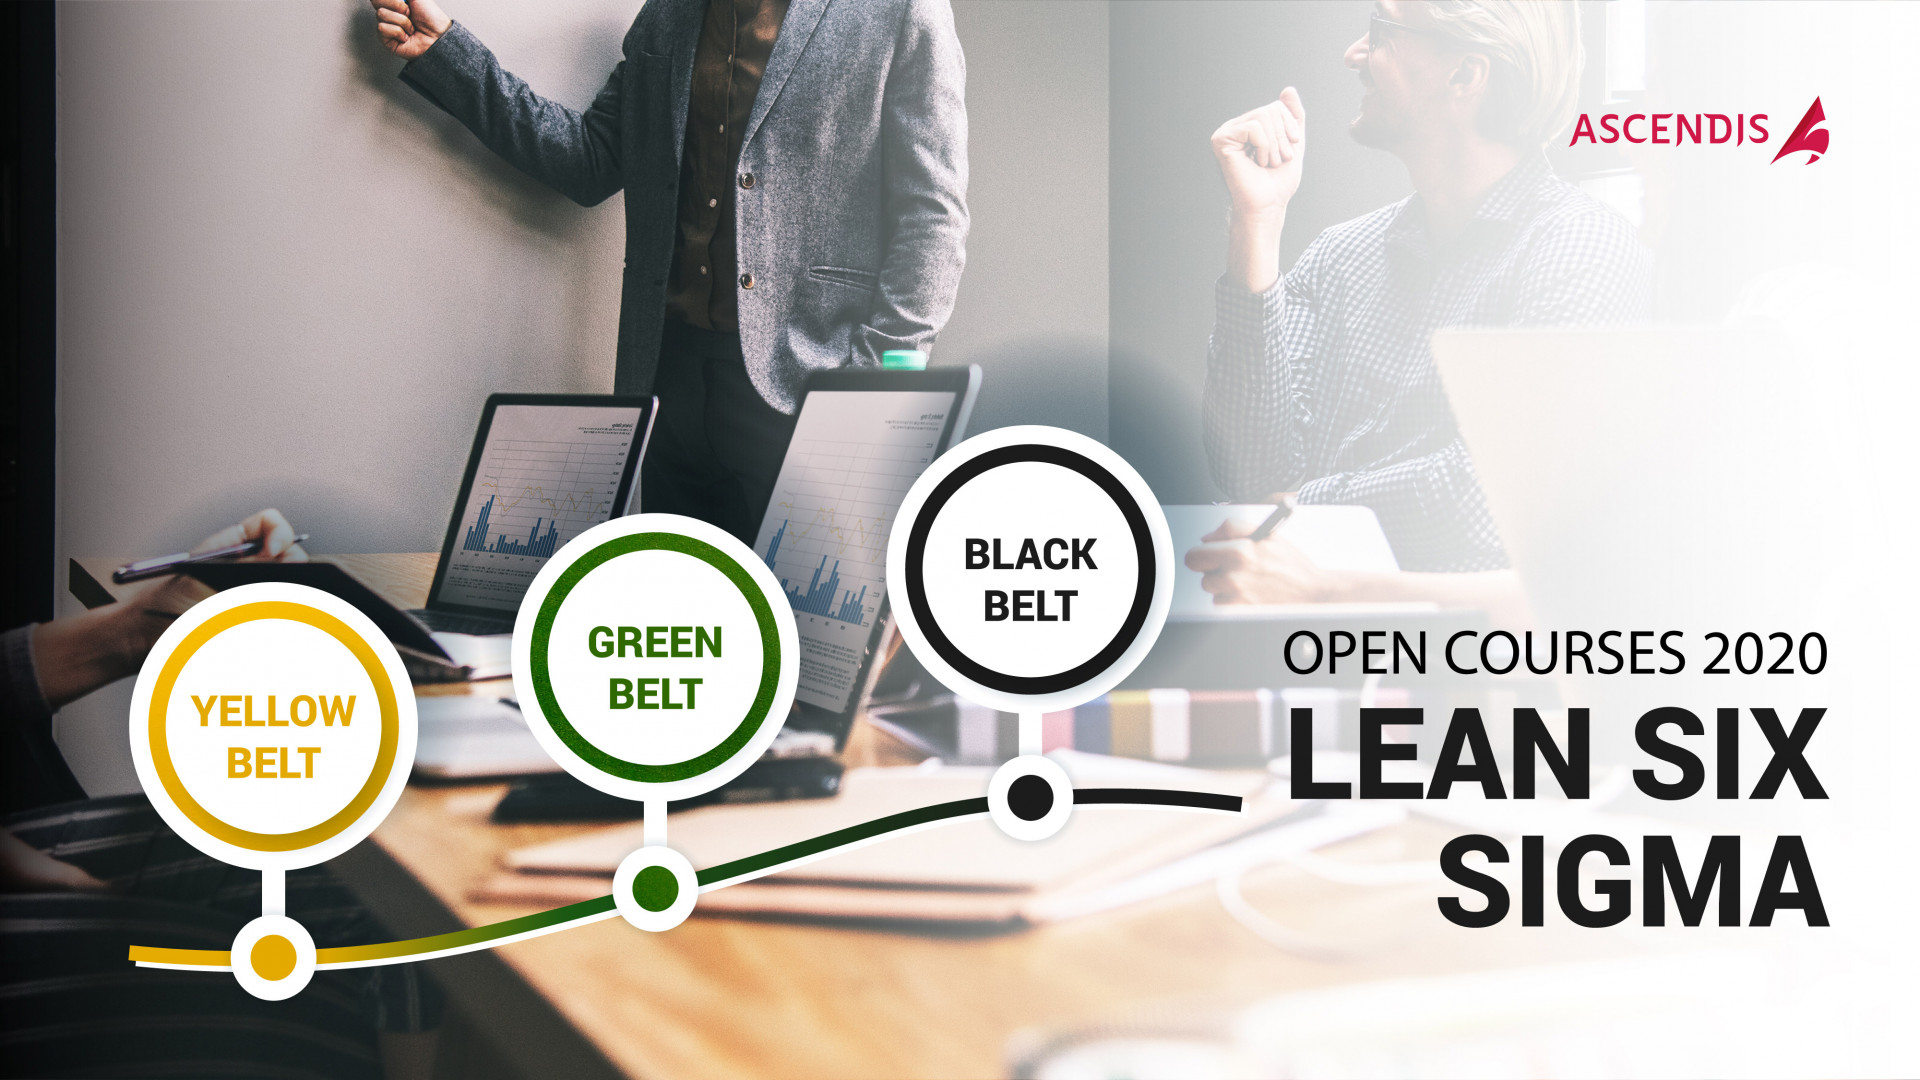 Open Courses LEAN SIX SIGMA, Spring 2020